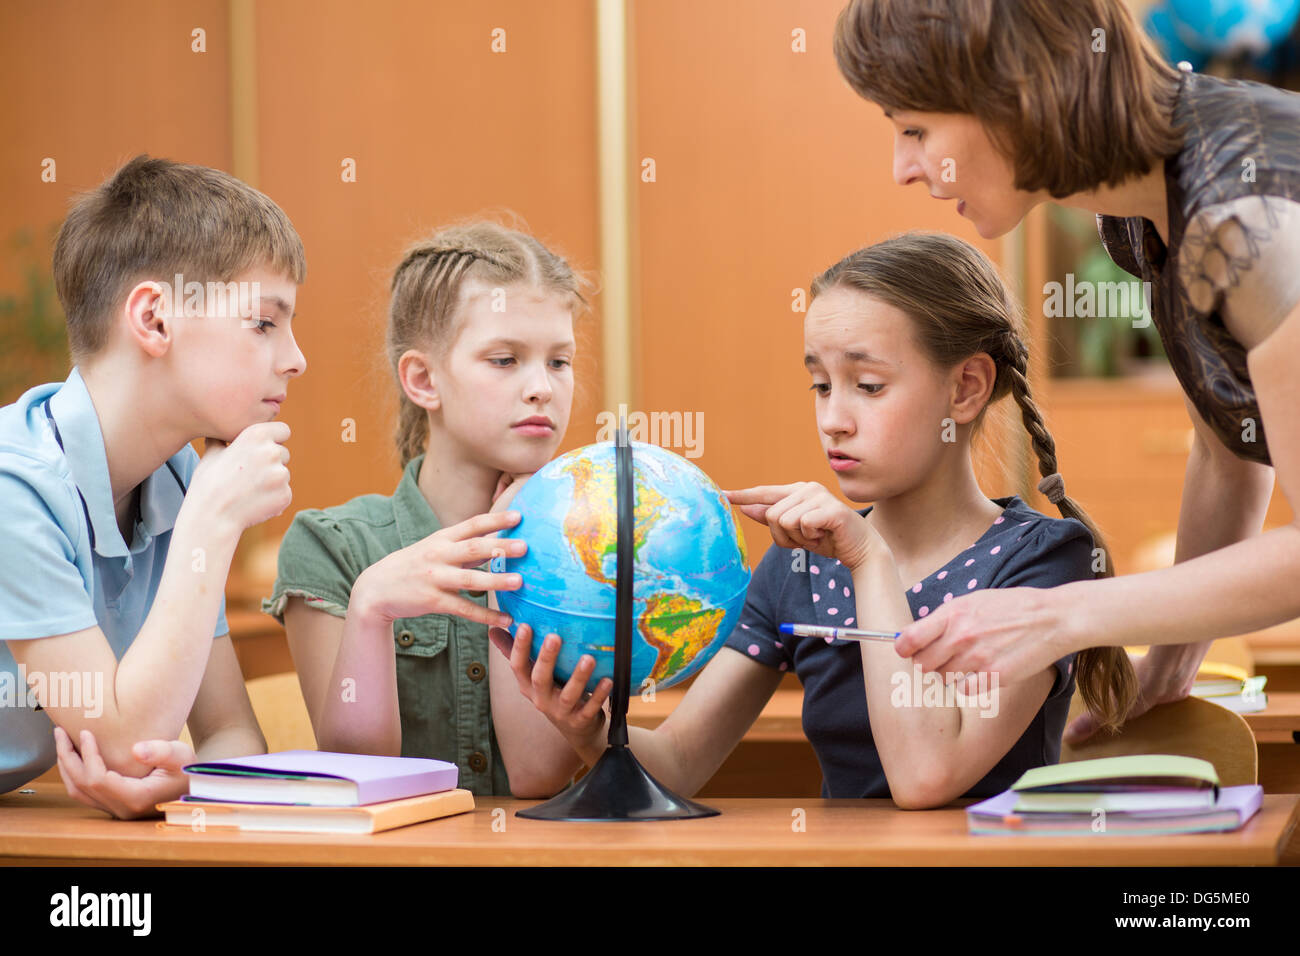 school kids studying a globe together with teacher - Stock Image